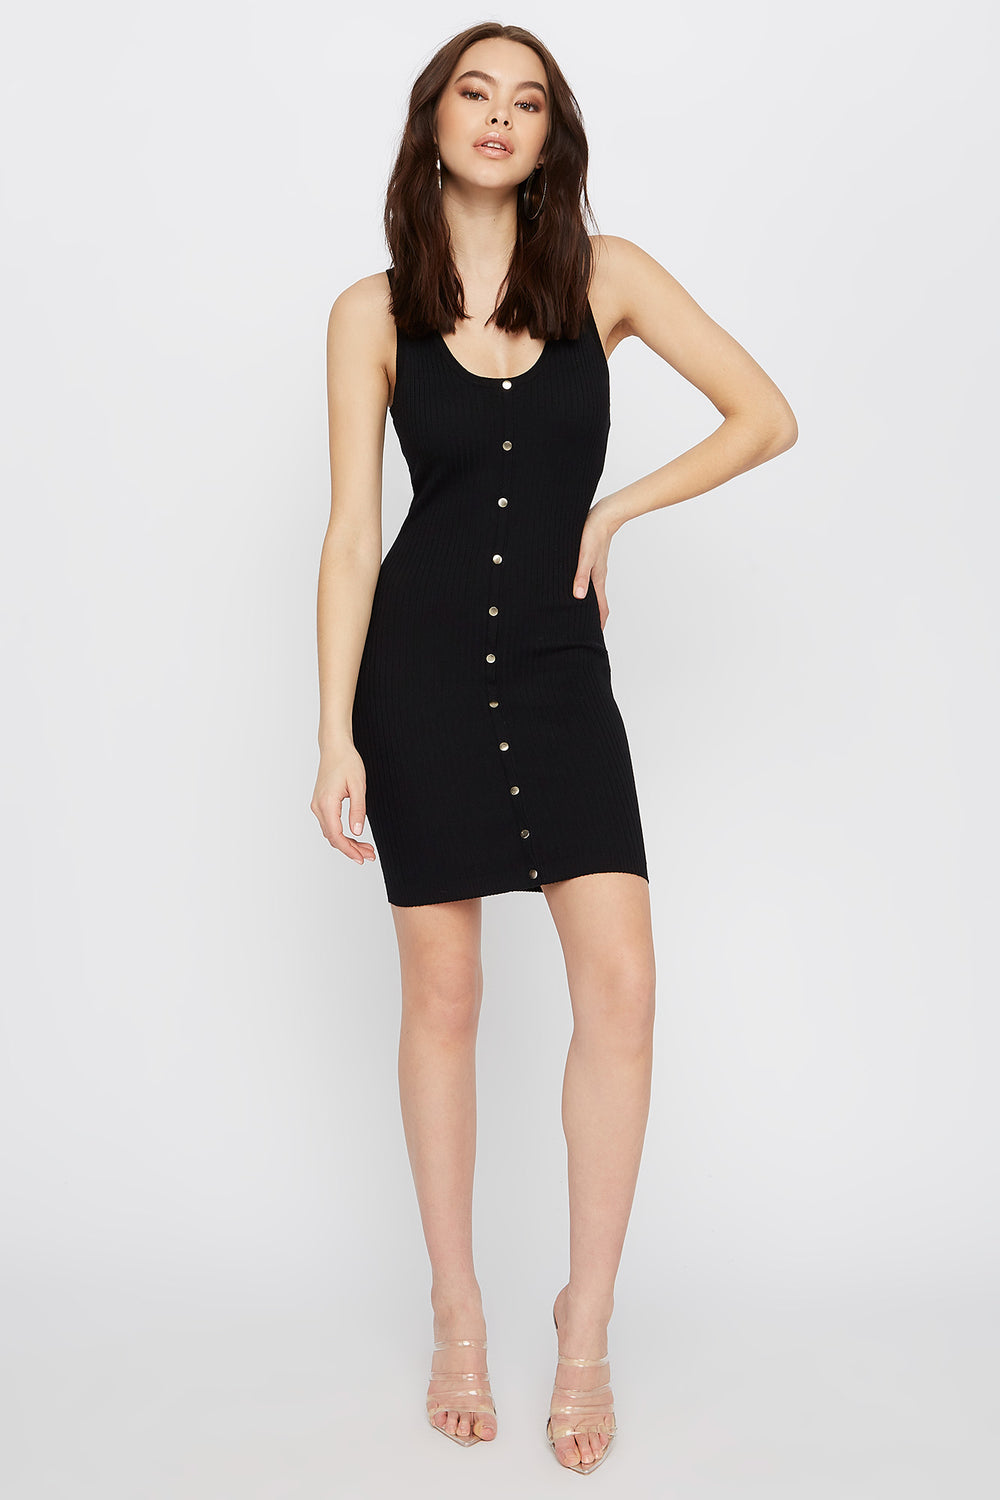 Ribbed Button-Up Bodycon Mini Dress Black